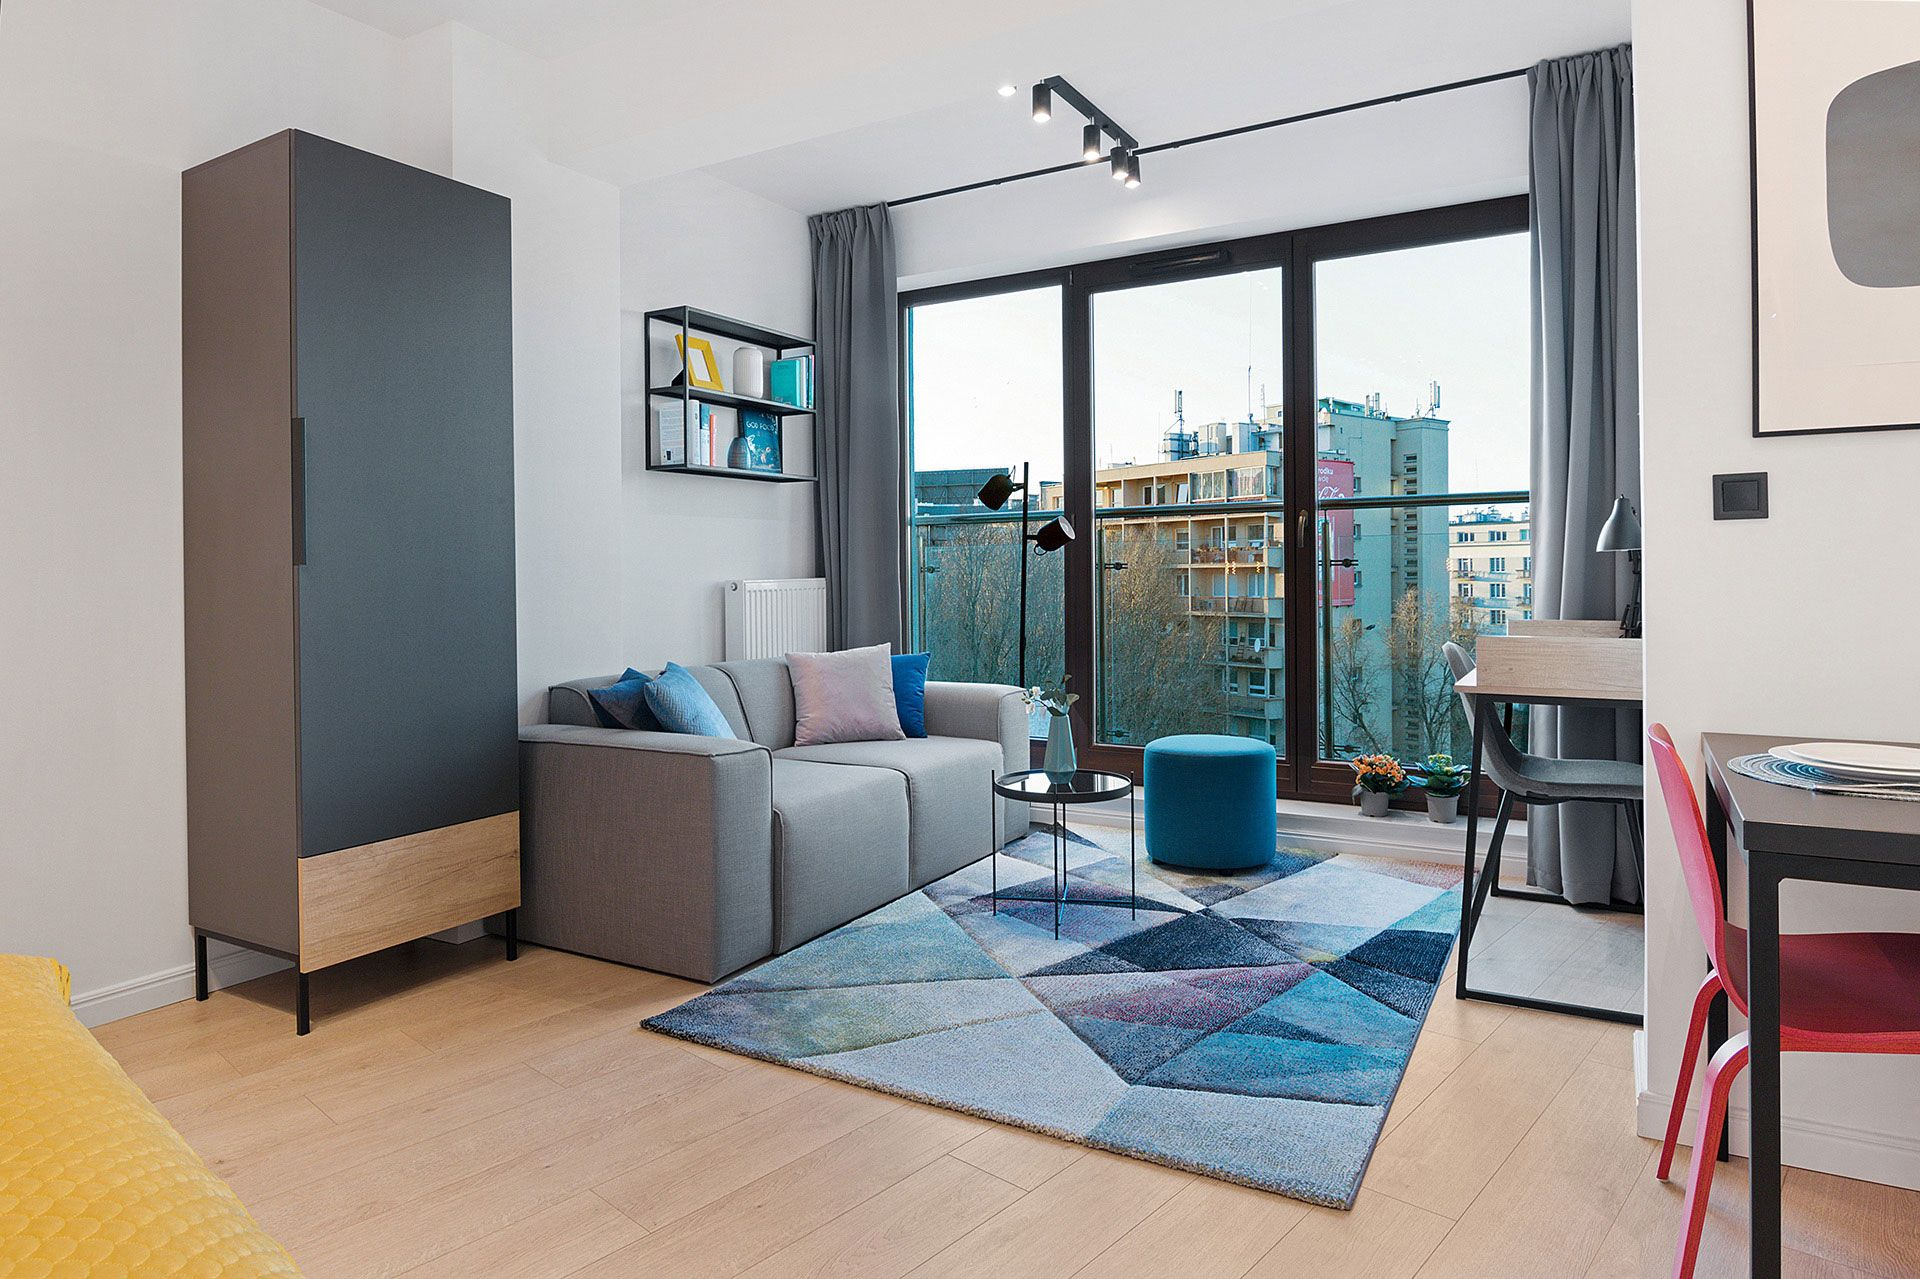 Studio - Medium apartment to rent in Warsaw UPR-A-082-1